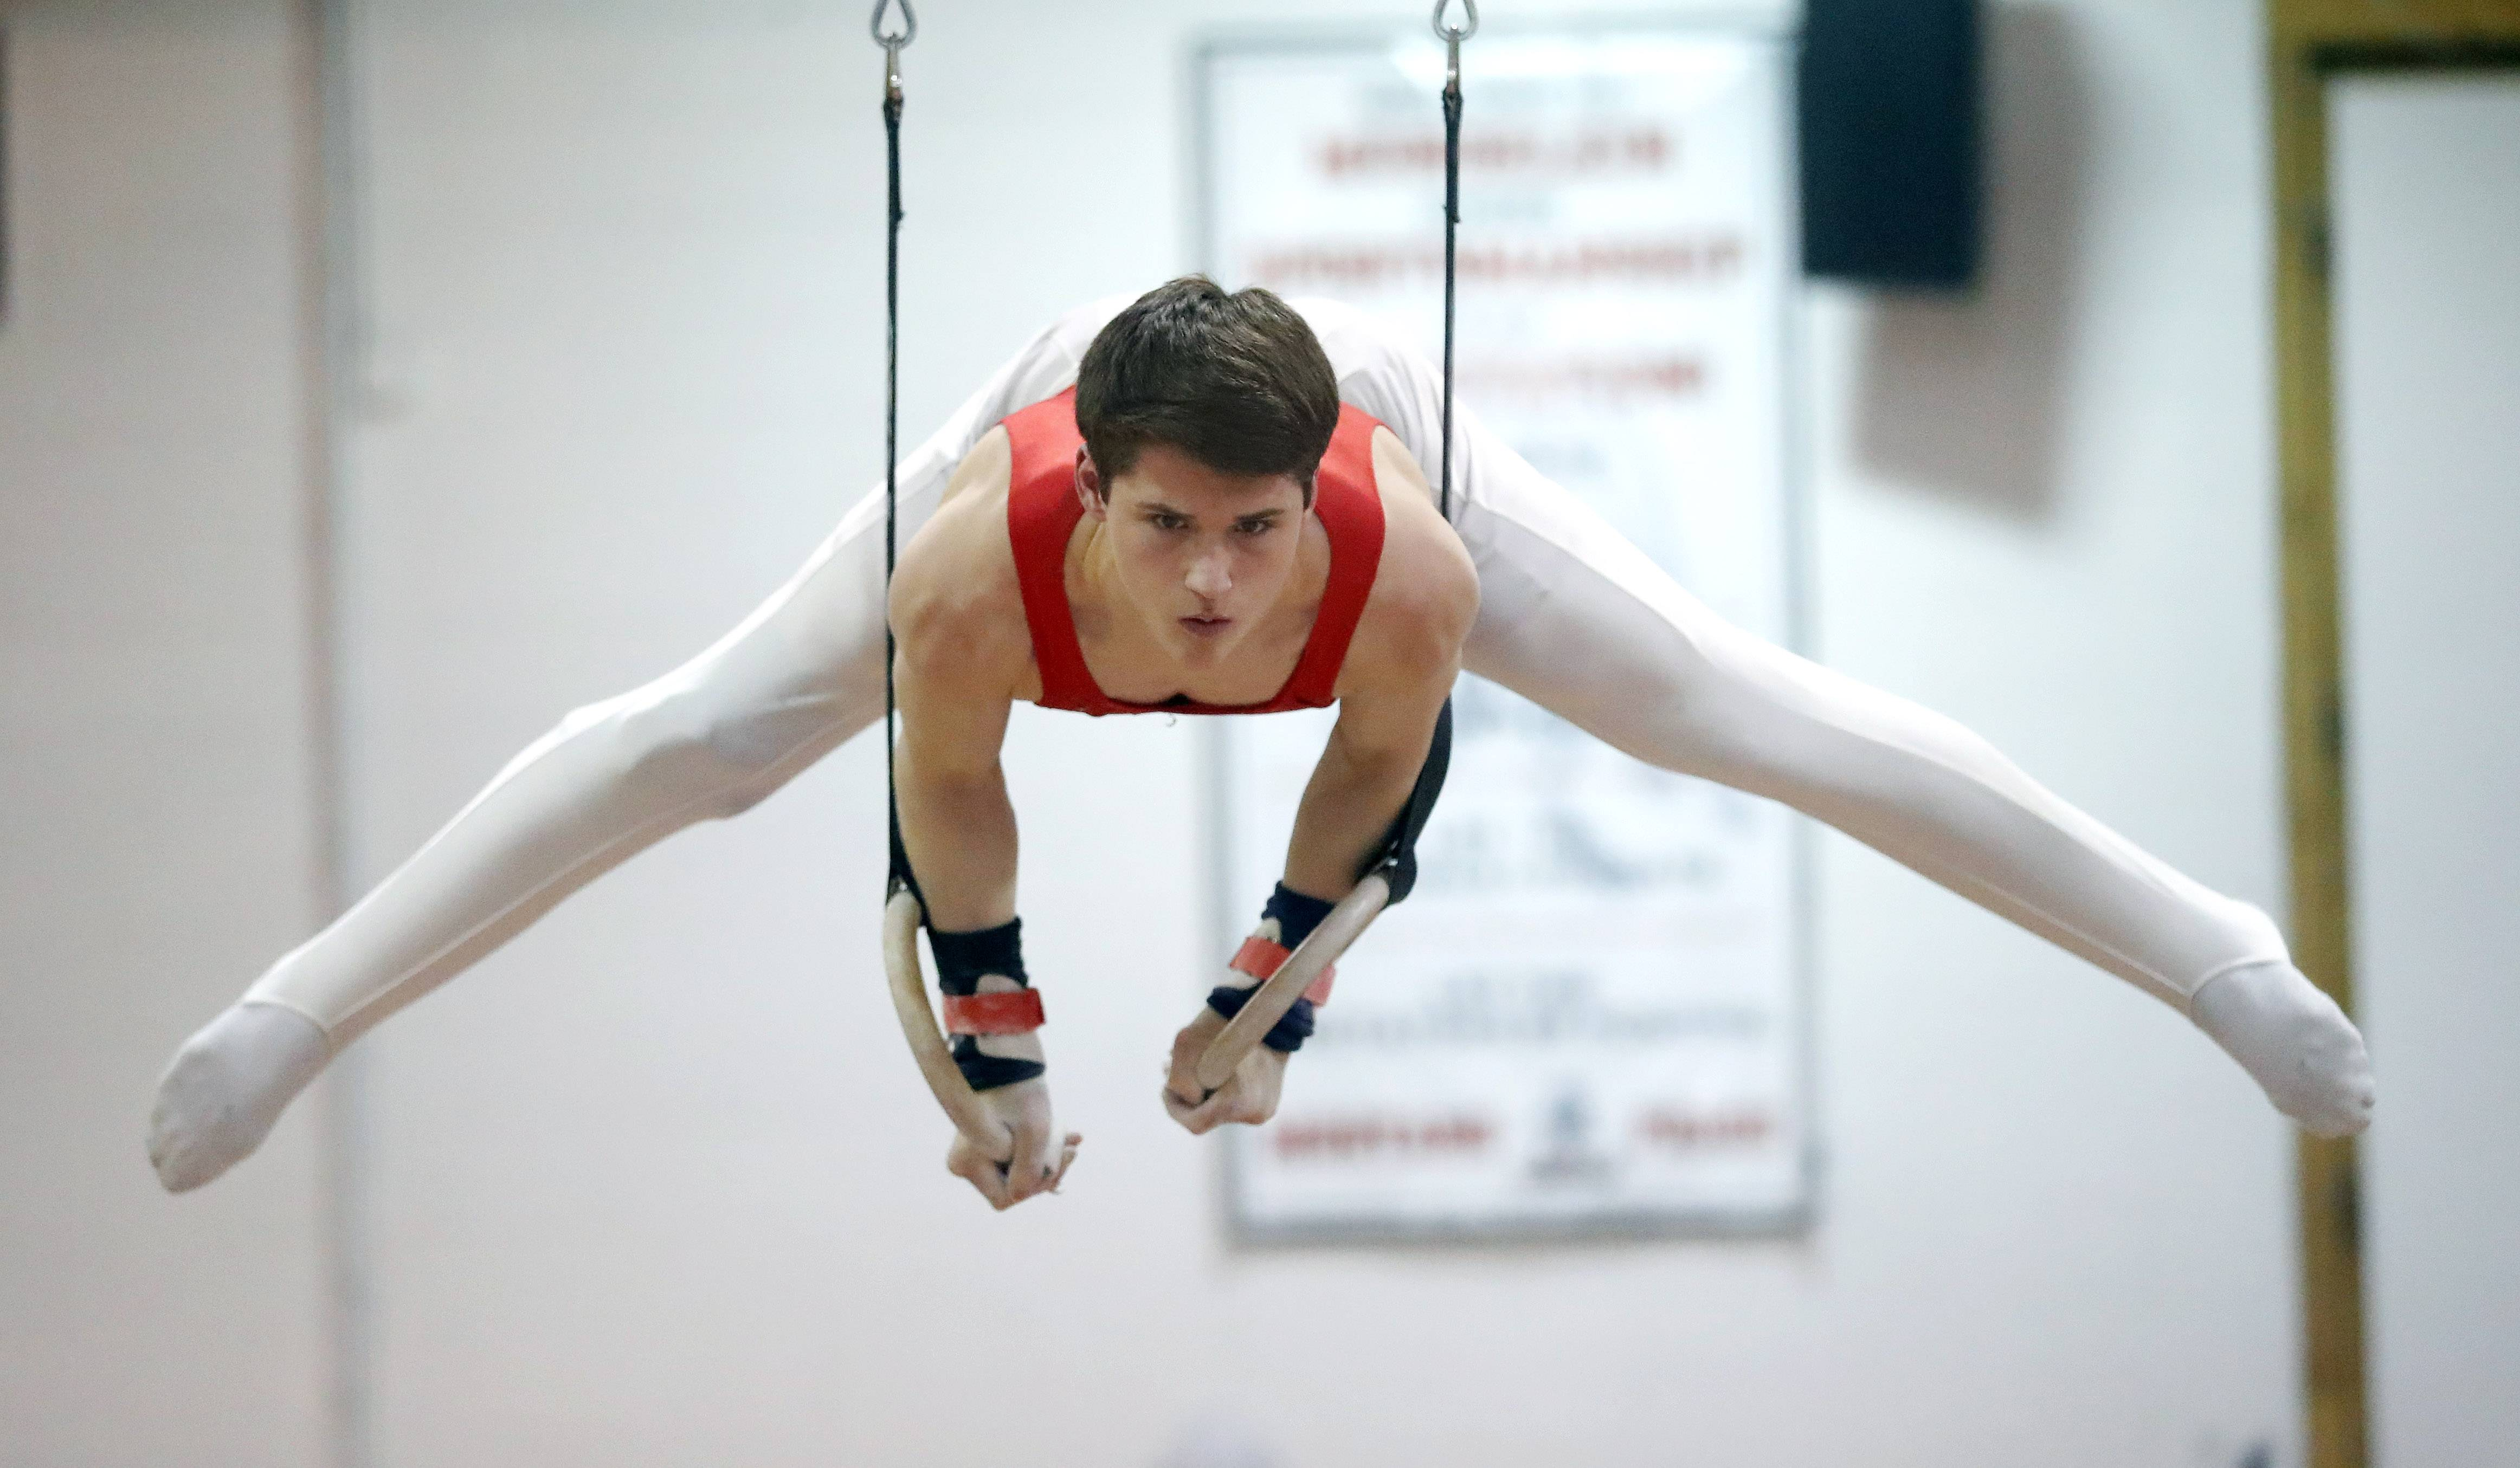 Mundelein's Kurt Lawrence competes on the still rings during the Bob Bohl invite at Mundelein on Friday night.